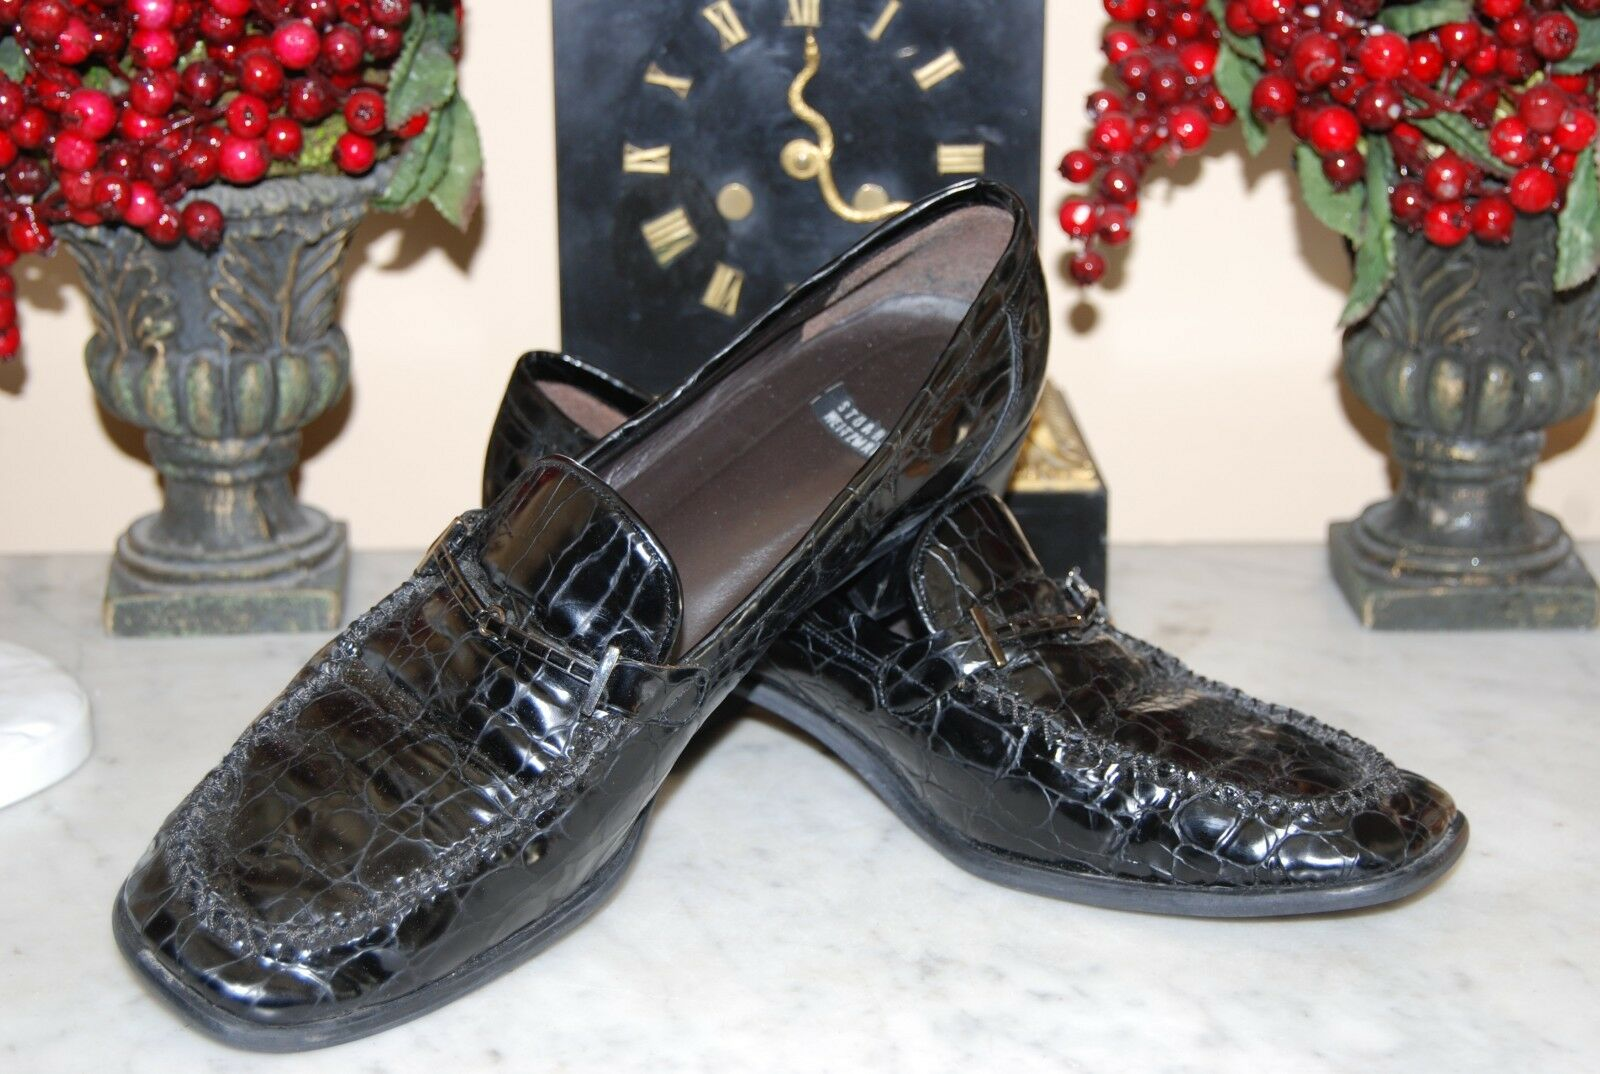 STUART WEITZMAN BLACK FAUX CROC PATENT LEATHER JEWELED WOMEN'S LOAFERS 11.5 AAA